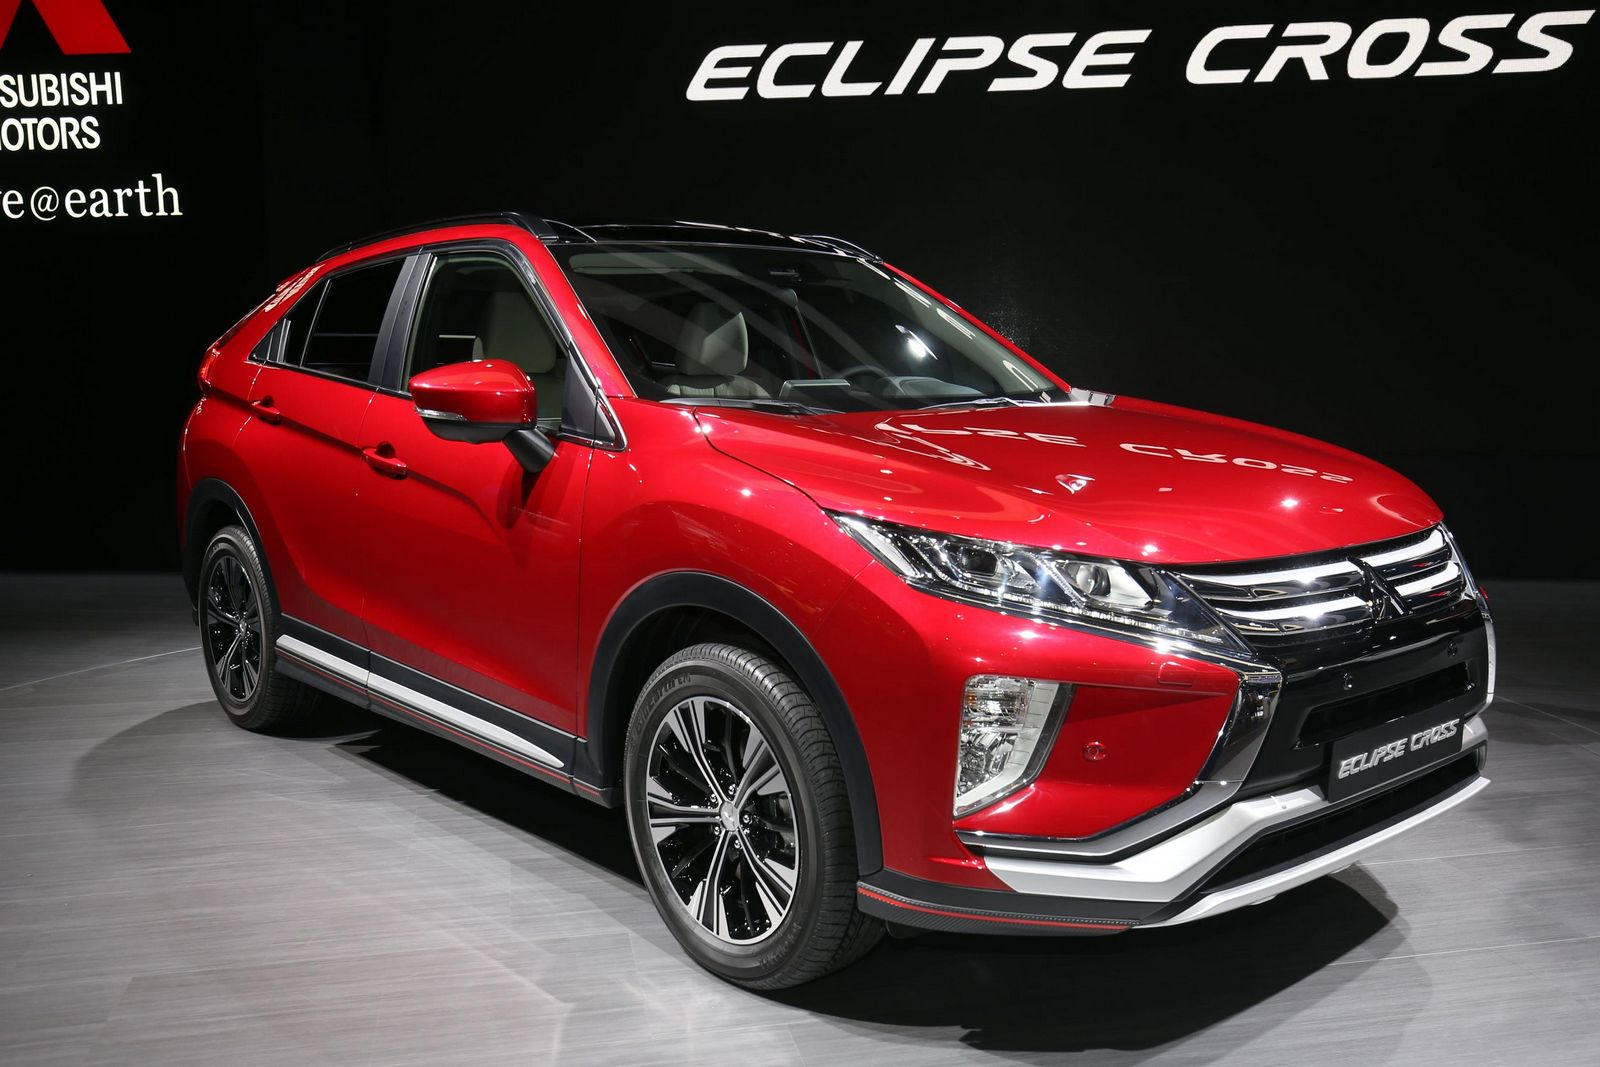 2018 mitsubishi eclipse cross brings evo tech to geneva 53 photos carscoops. Black Bedroom Furniture Sets. Home Design Ideas